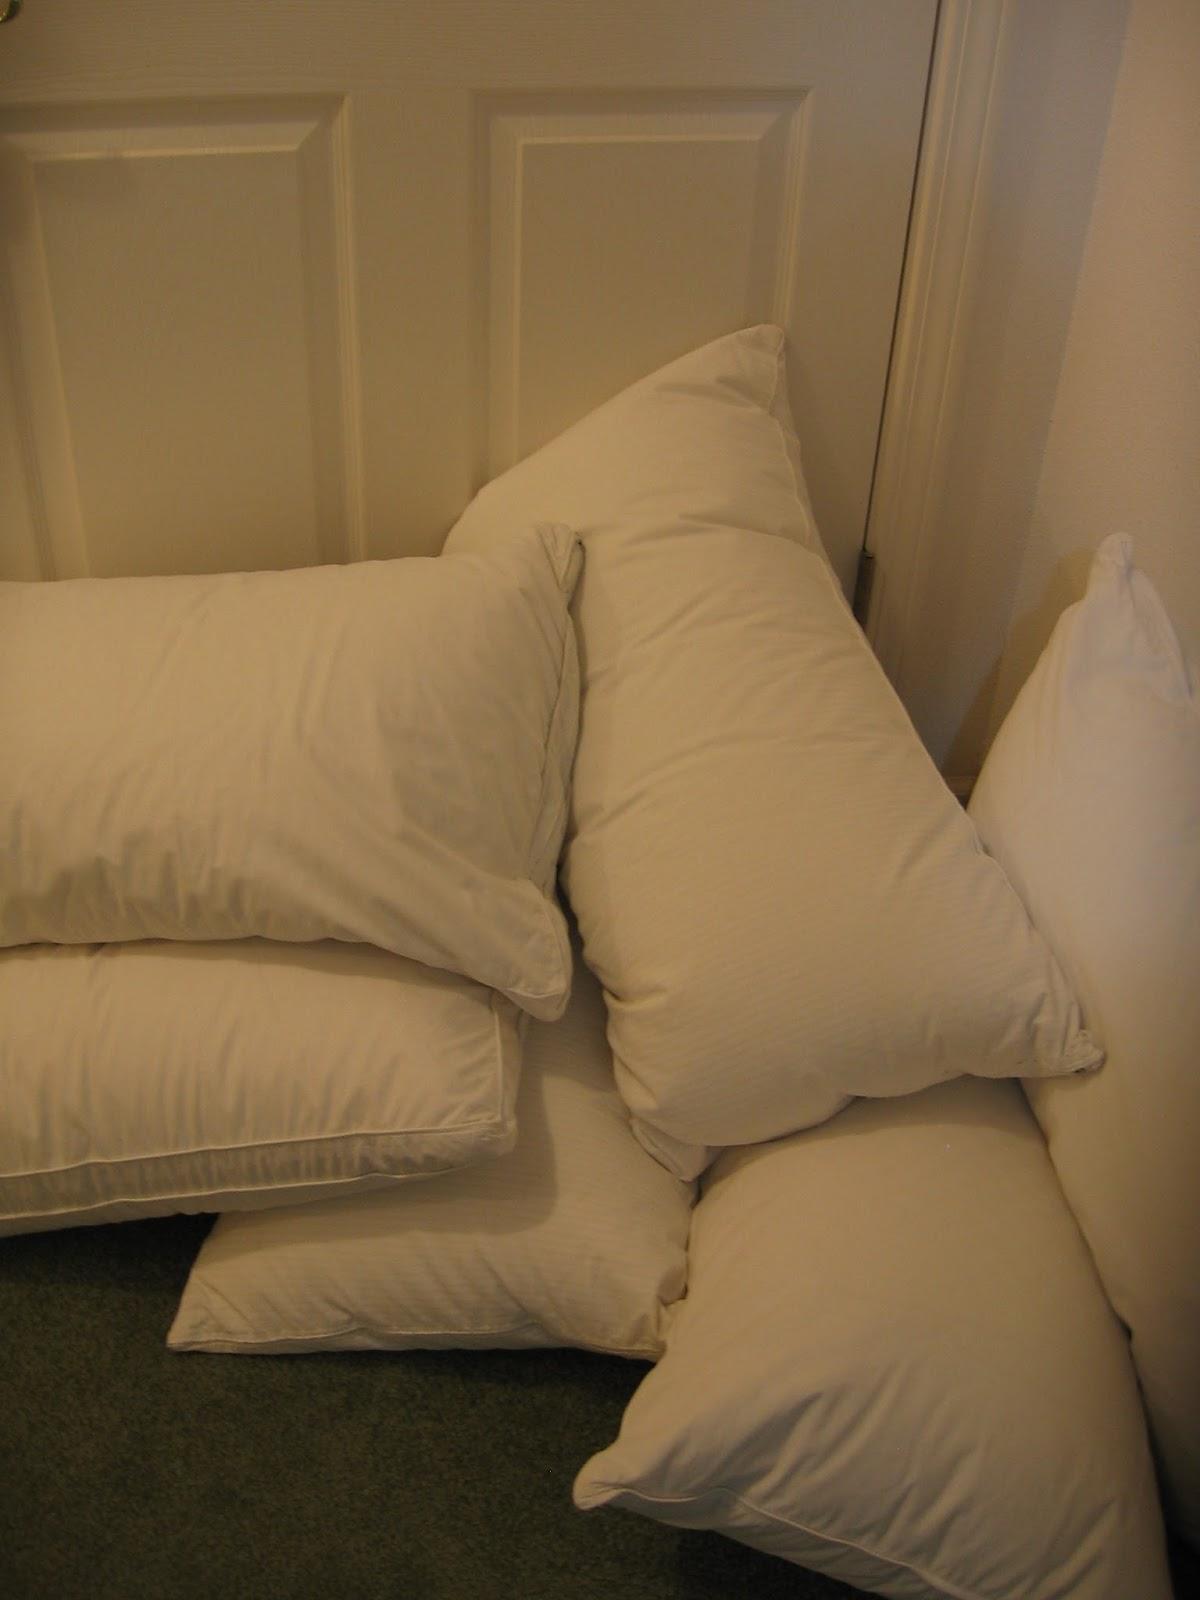 the stuff closet down pillows purchasing and cleaning